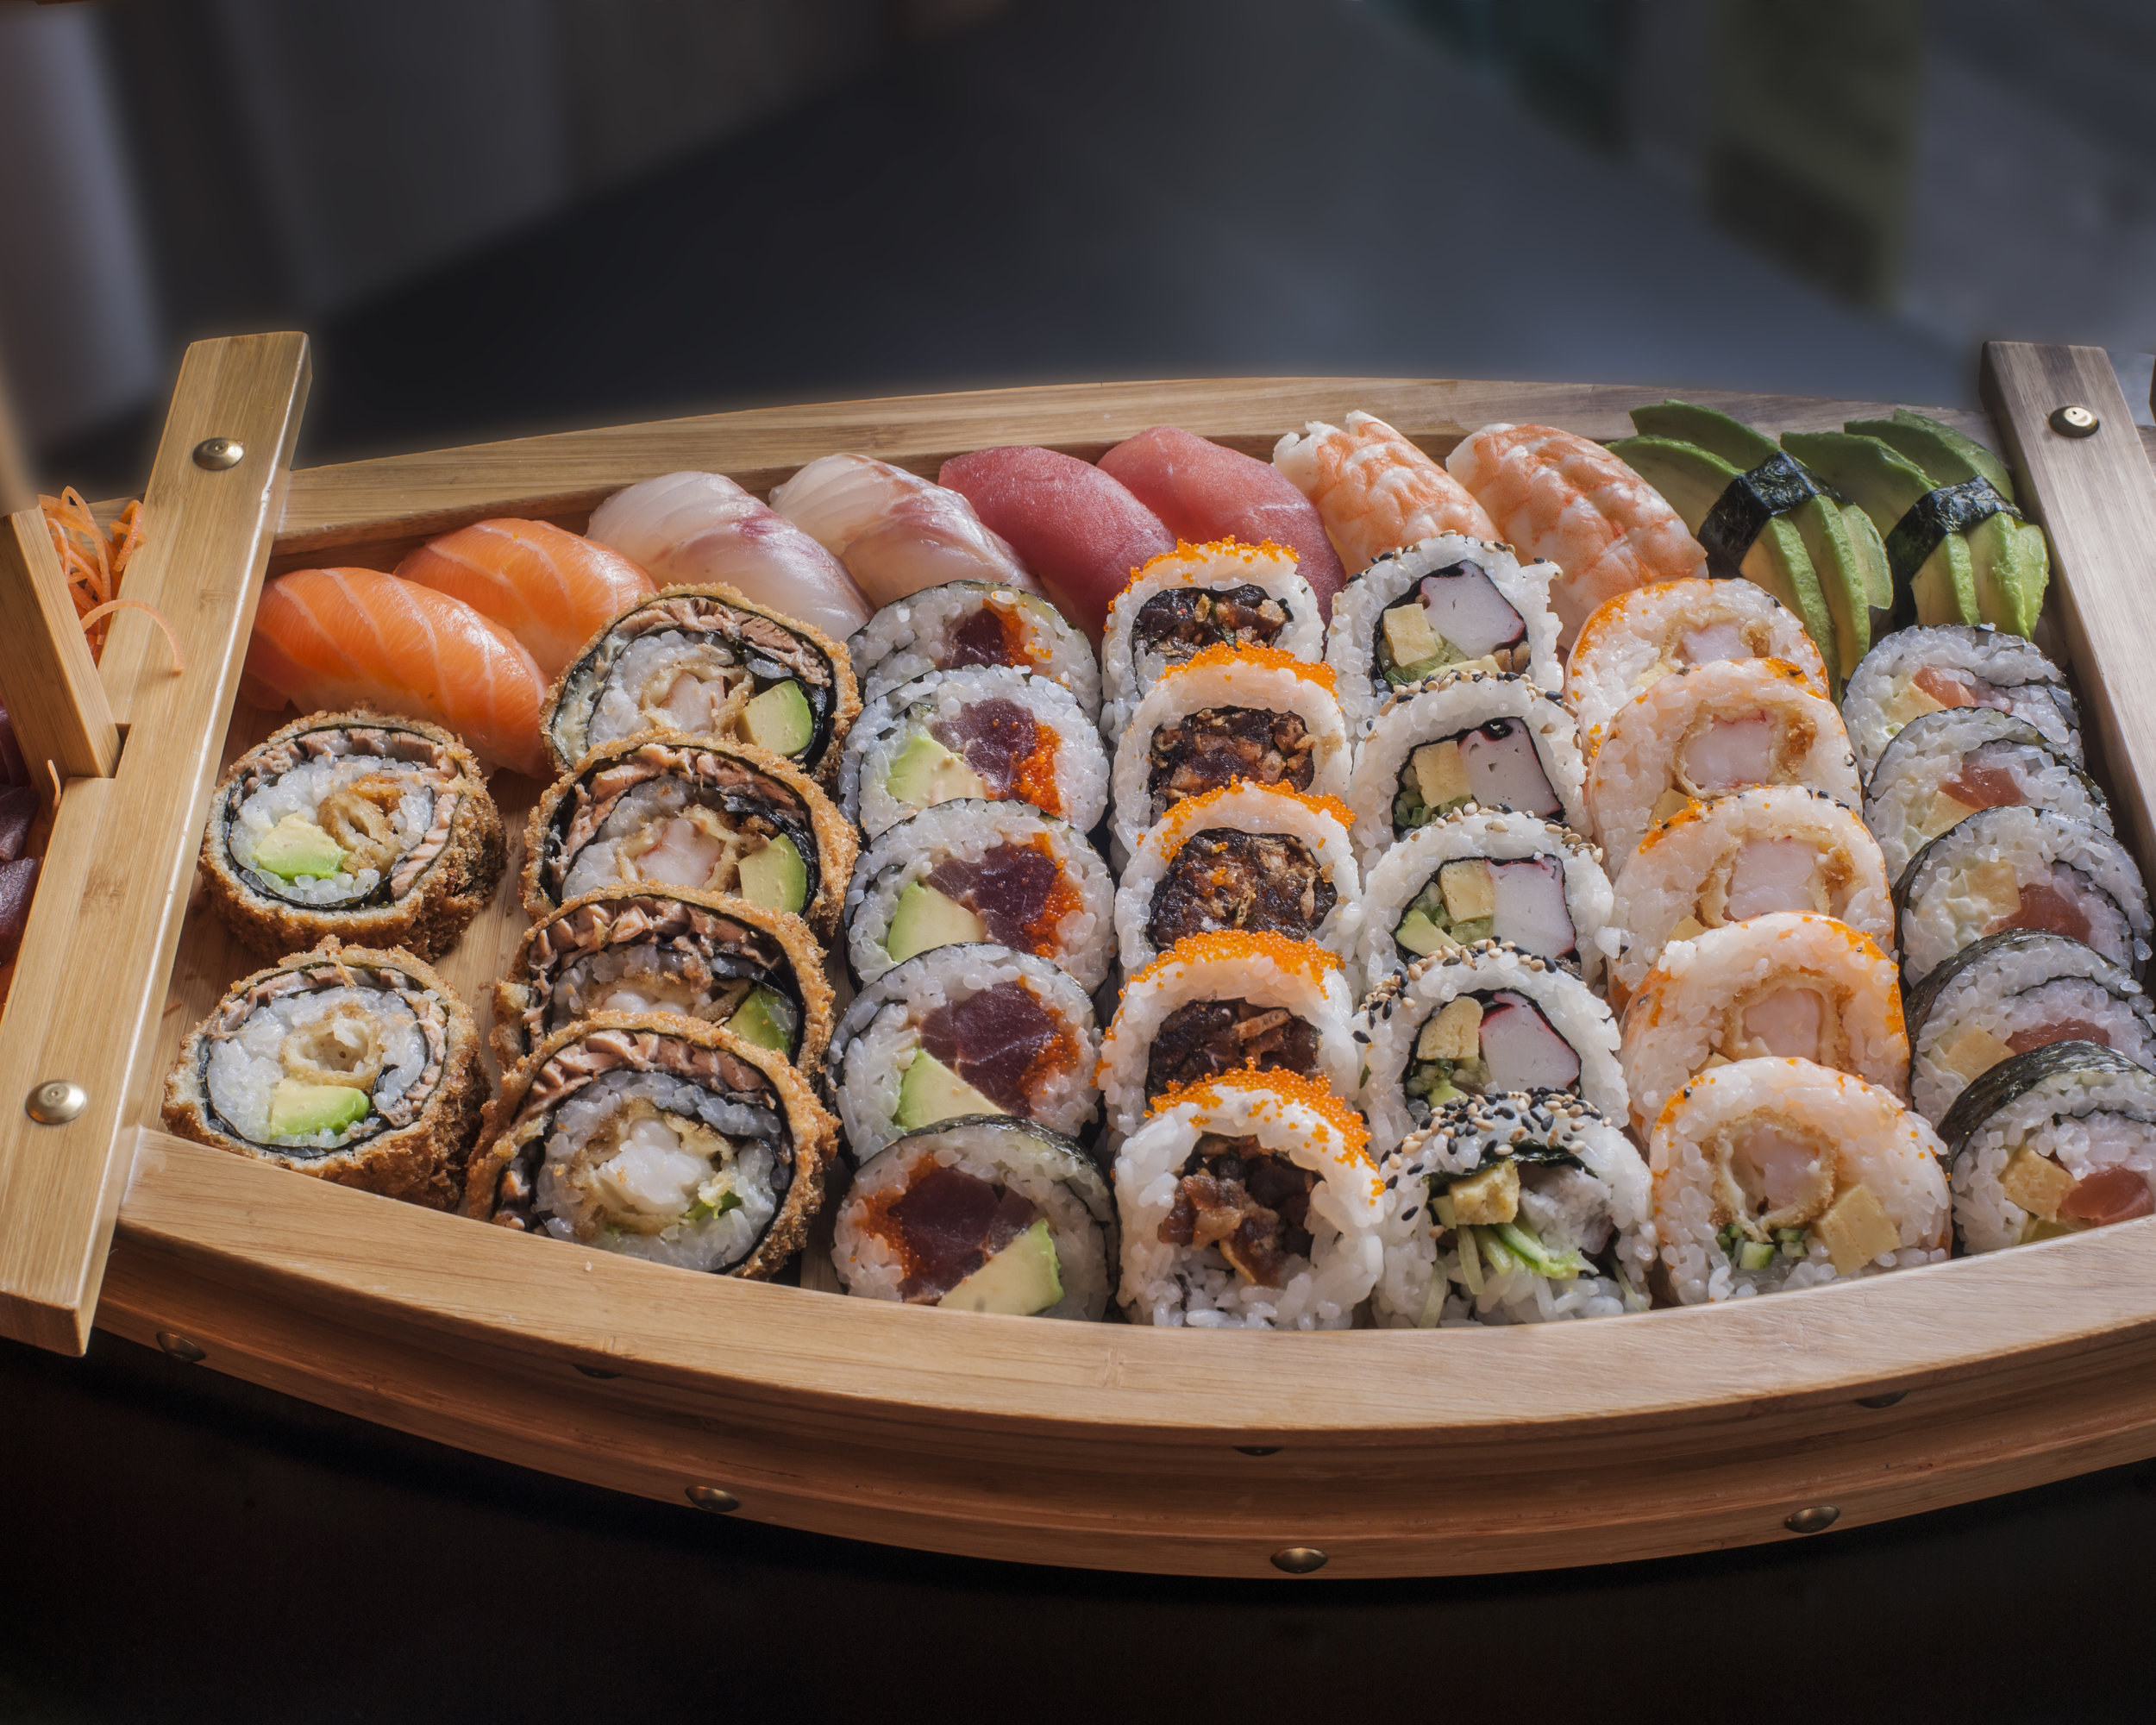 Hara Hachi Bu - Enjoy sushi until you are 80% full